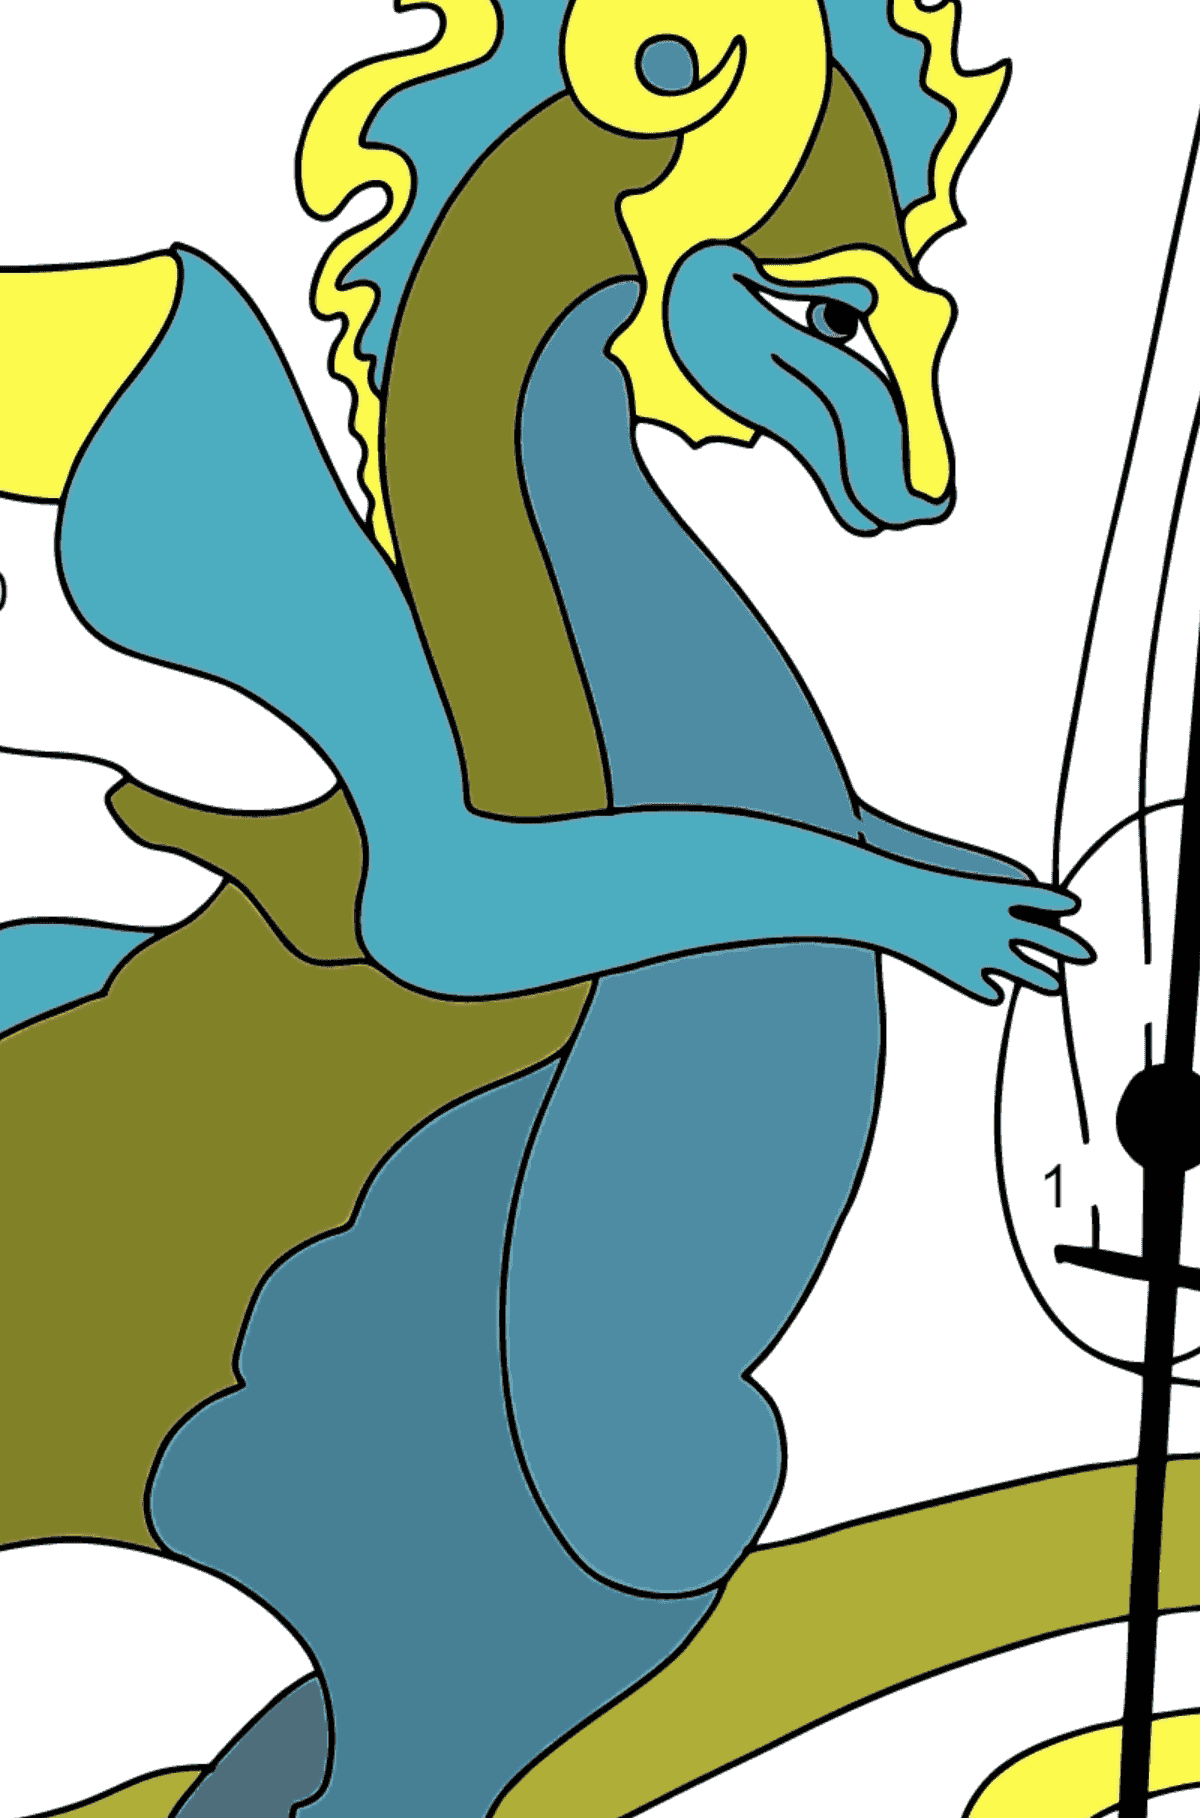 Coloring Page - A Dragon is Playing a Musical Instrument - Coloring by Numbers for Children